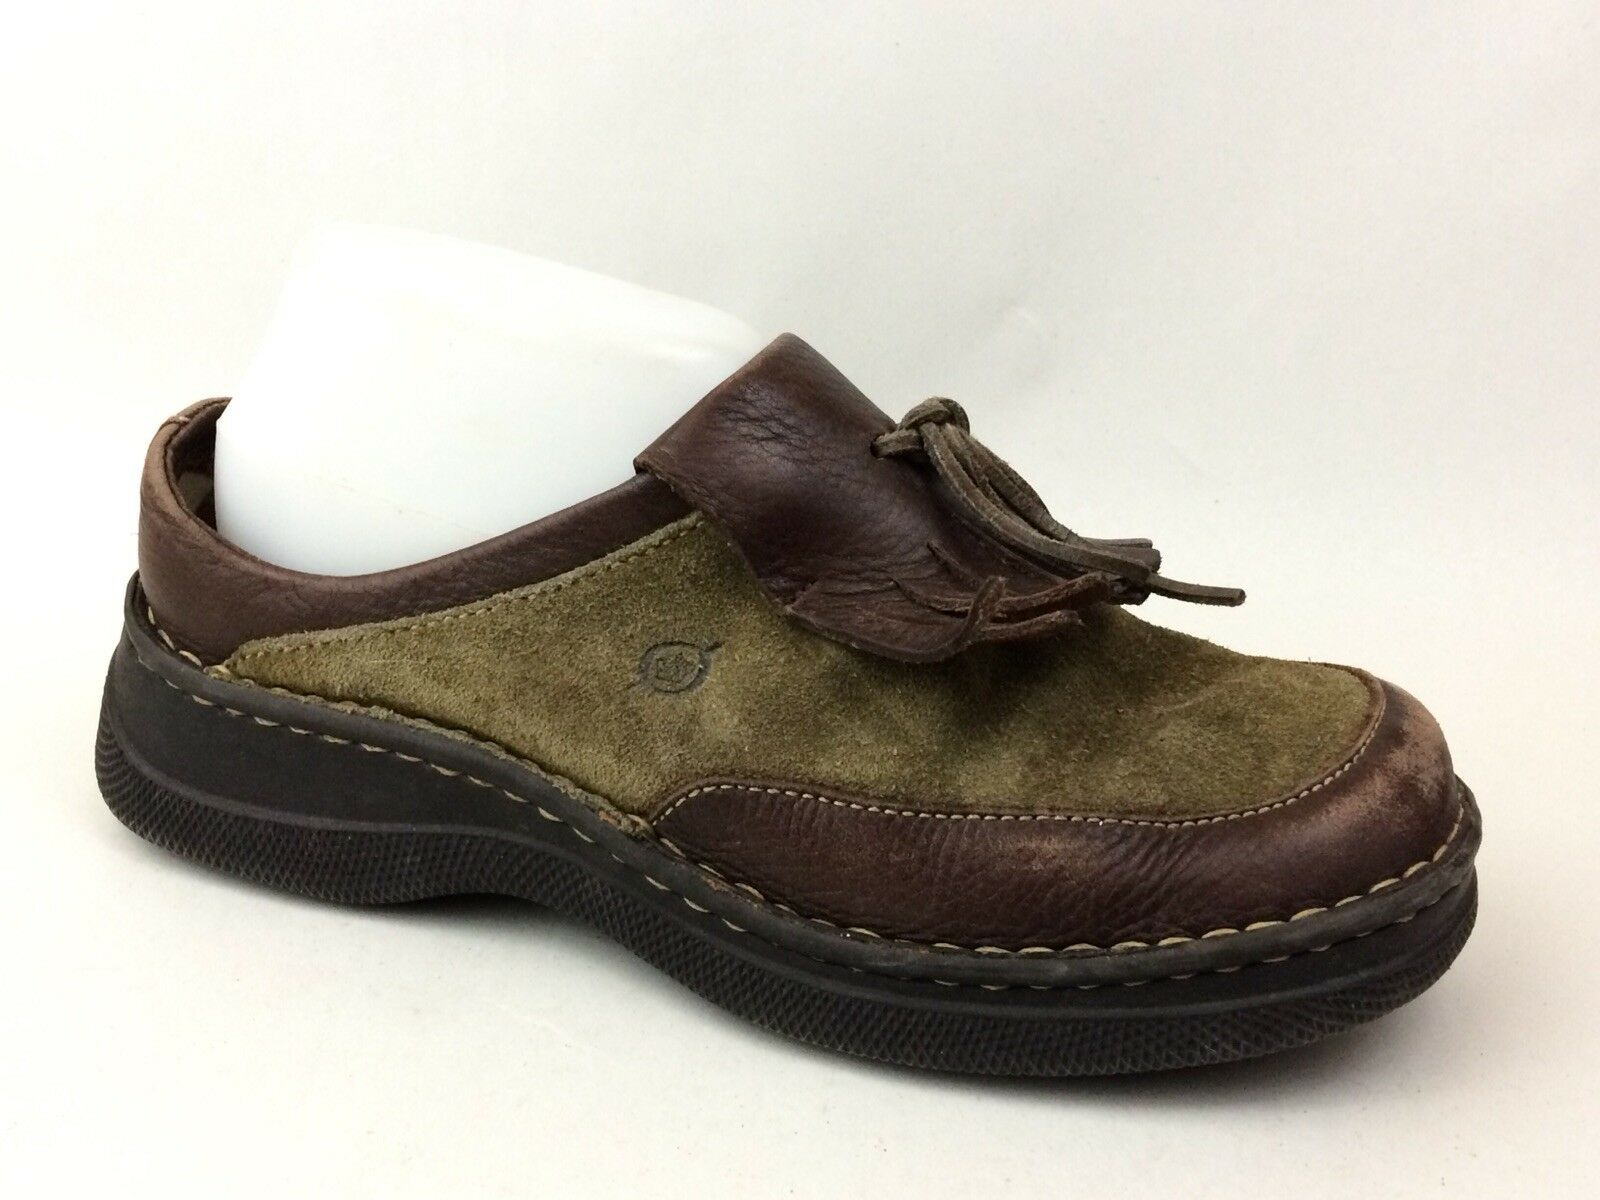 Women's Shoes Born Brand Women Us Size 6 Shoe Clog Mule Leather Upper Eur 36.5 Open Back Modern And Elegant In Fashion